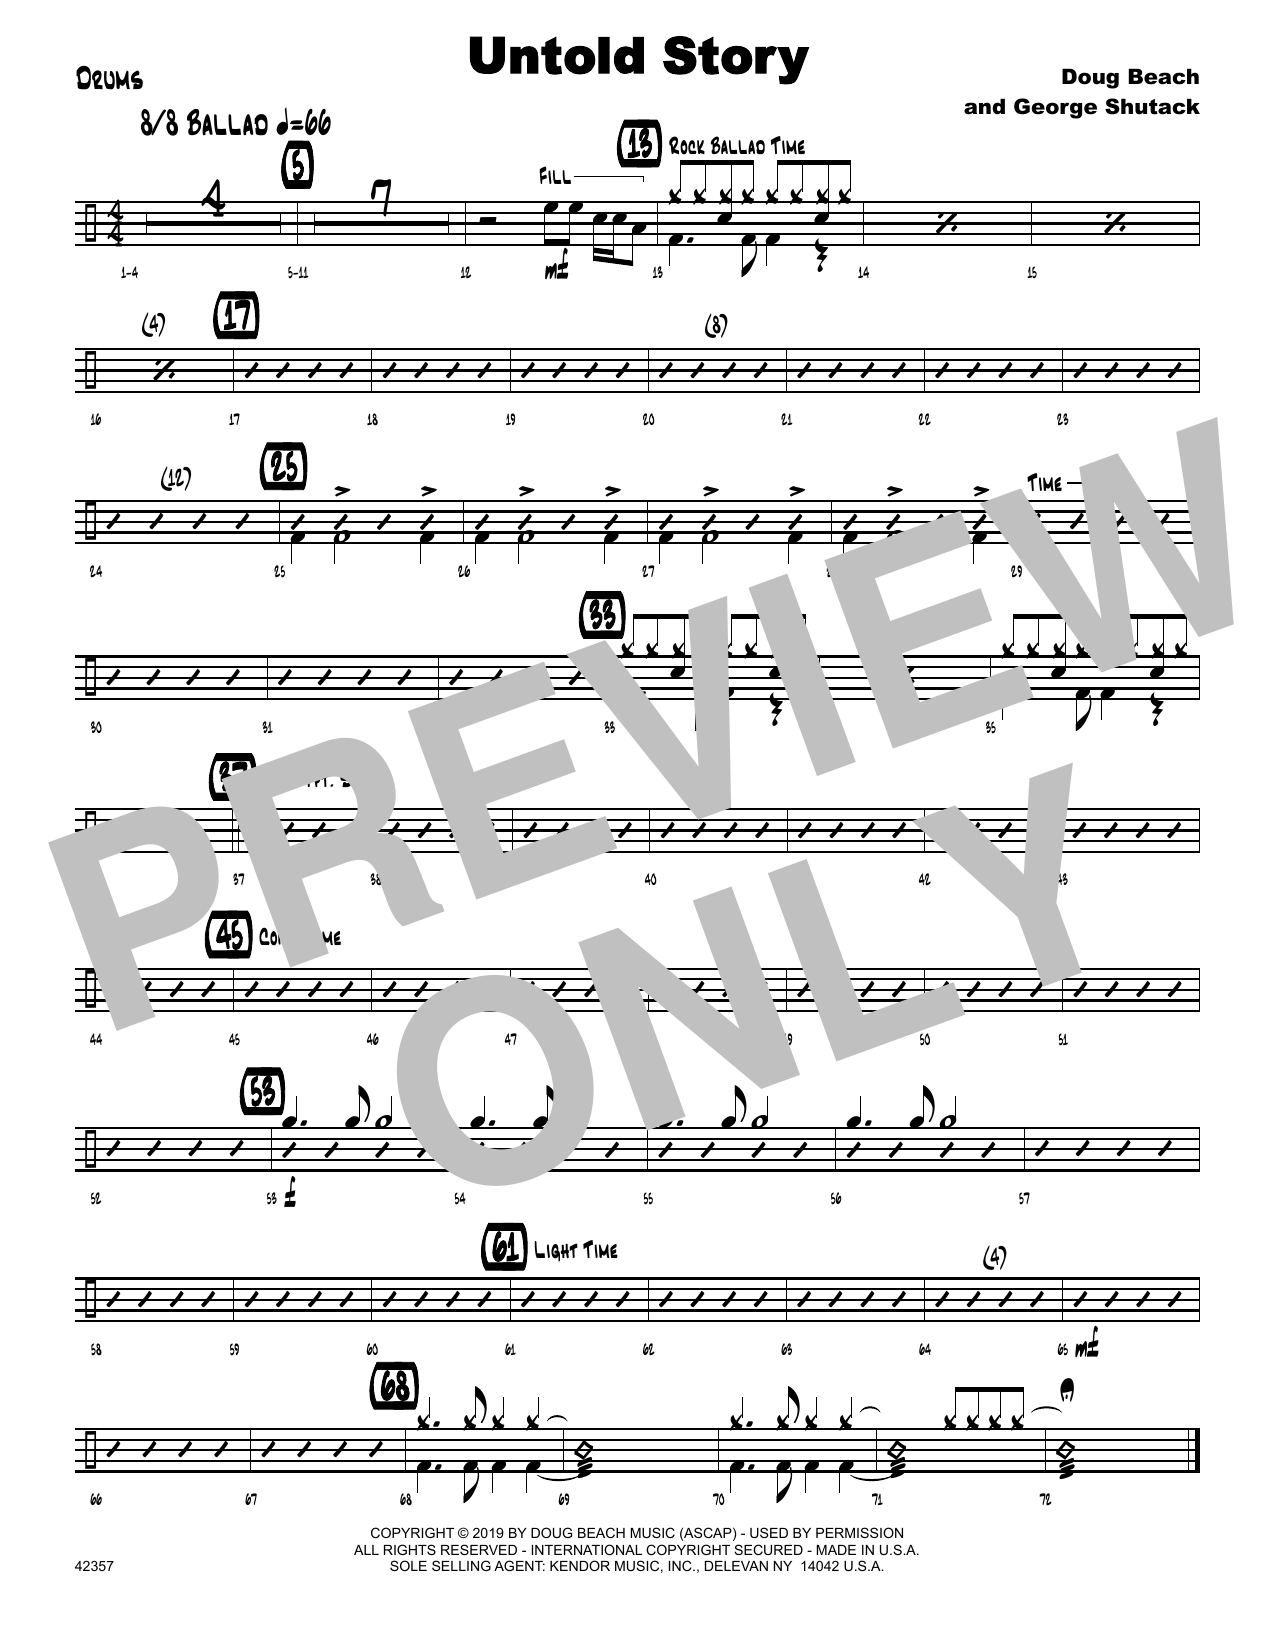 Doug Beach & George Shutack Untold Story - Drum Set sheet music notes and chords. Download Printable PDF.